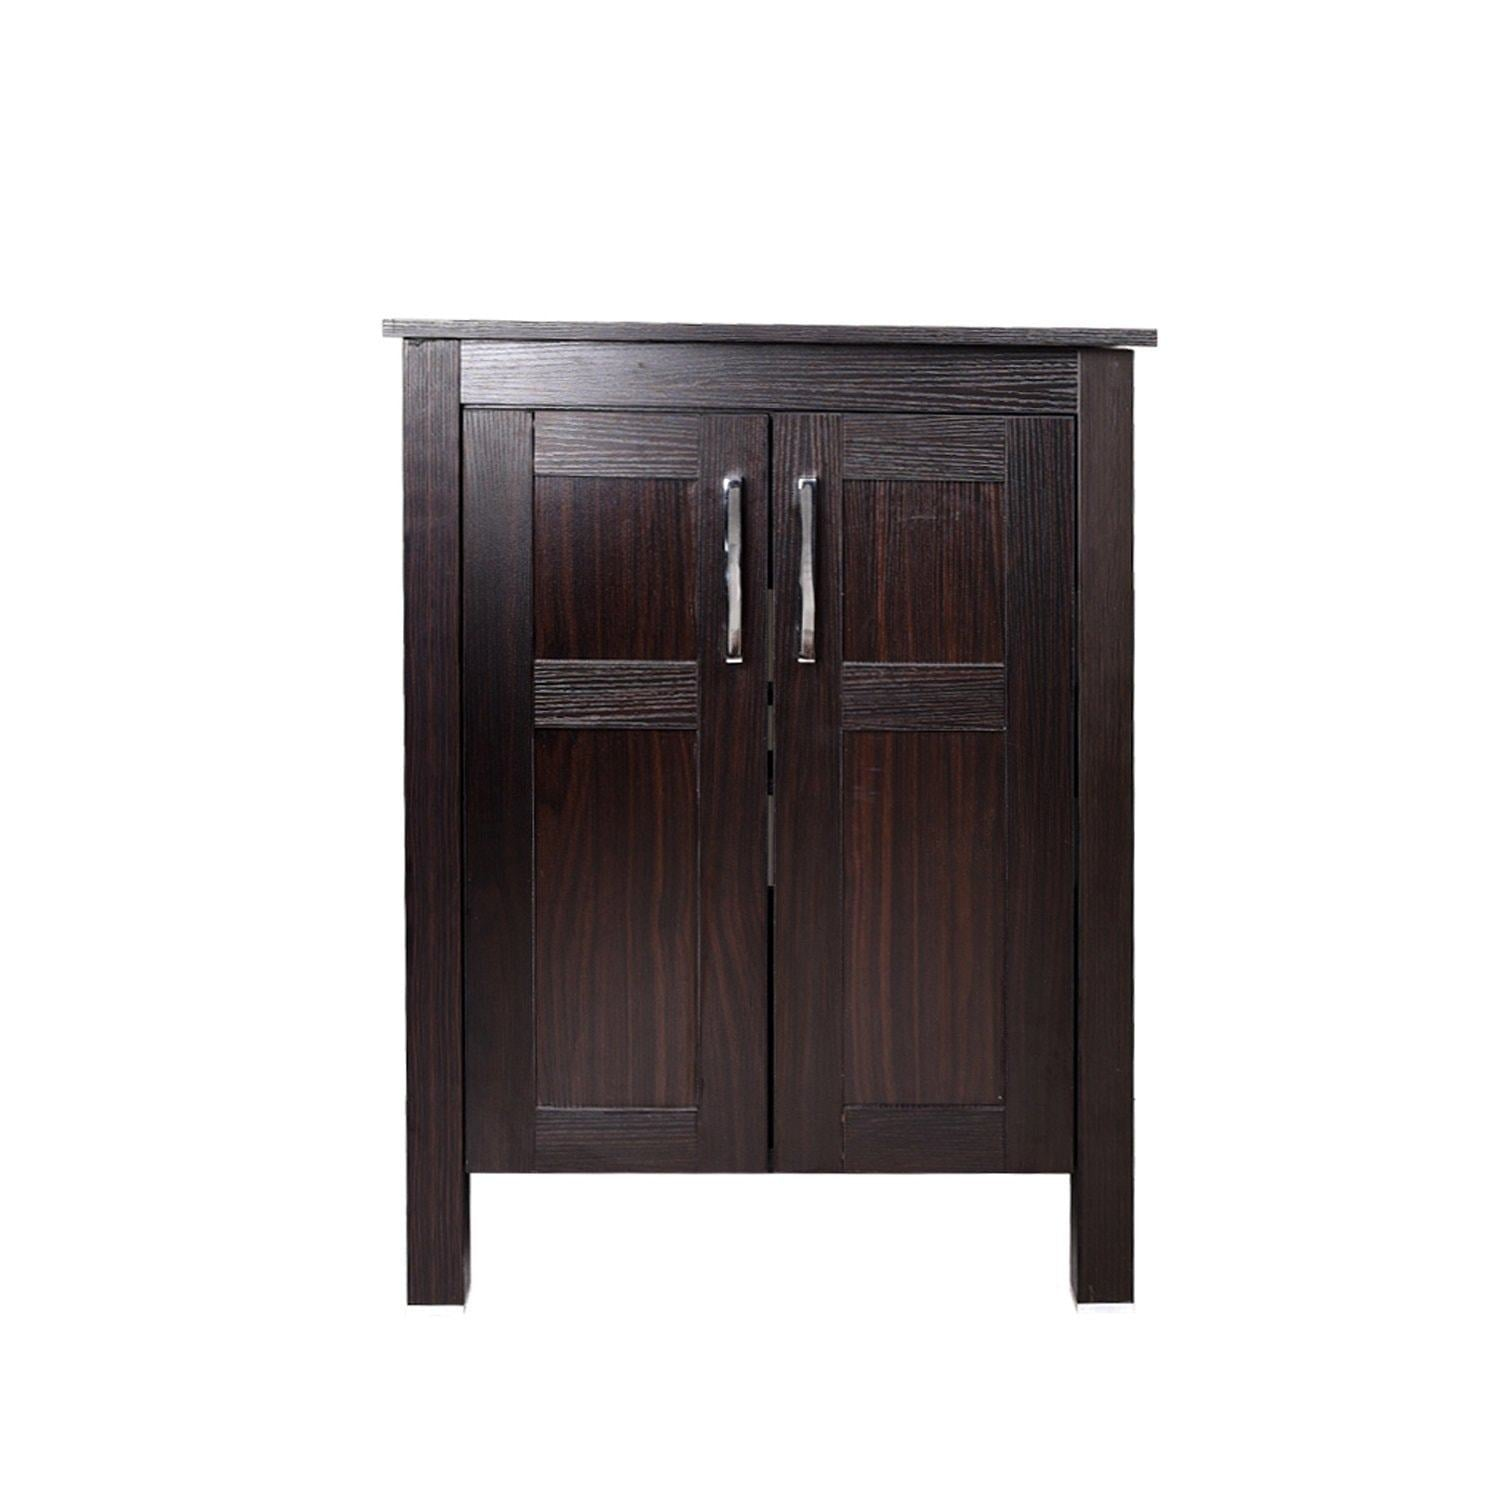 Order now 24 inches traditional bathroom vanity set in dark coffee finish single bathroom vanity with top and 2 door cabinet brown glass sink top with single faucet hole